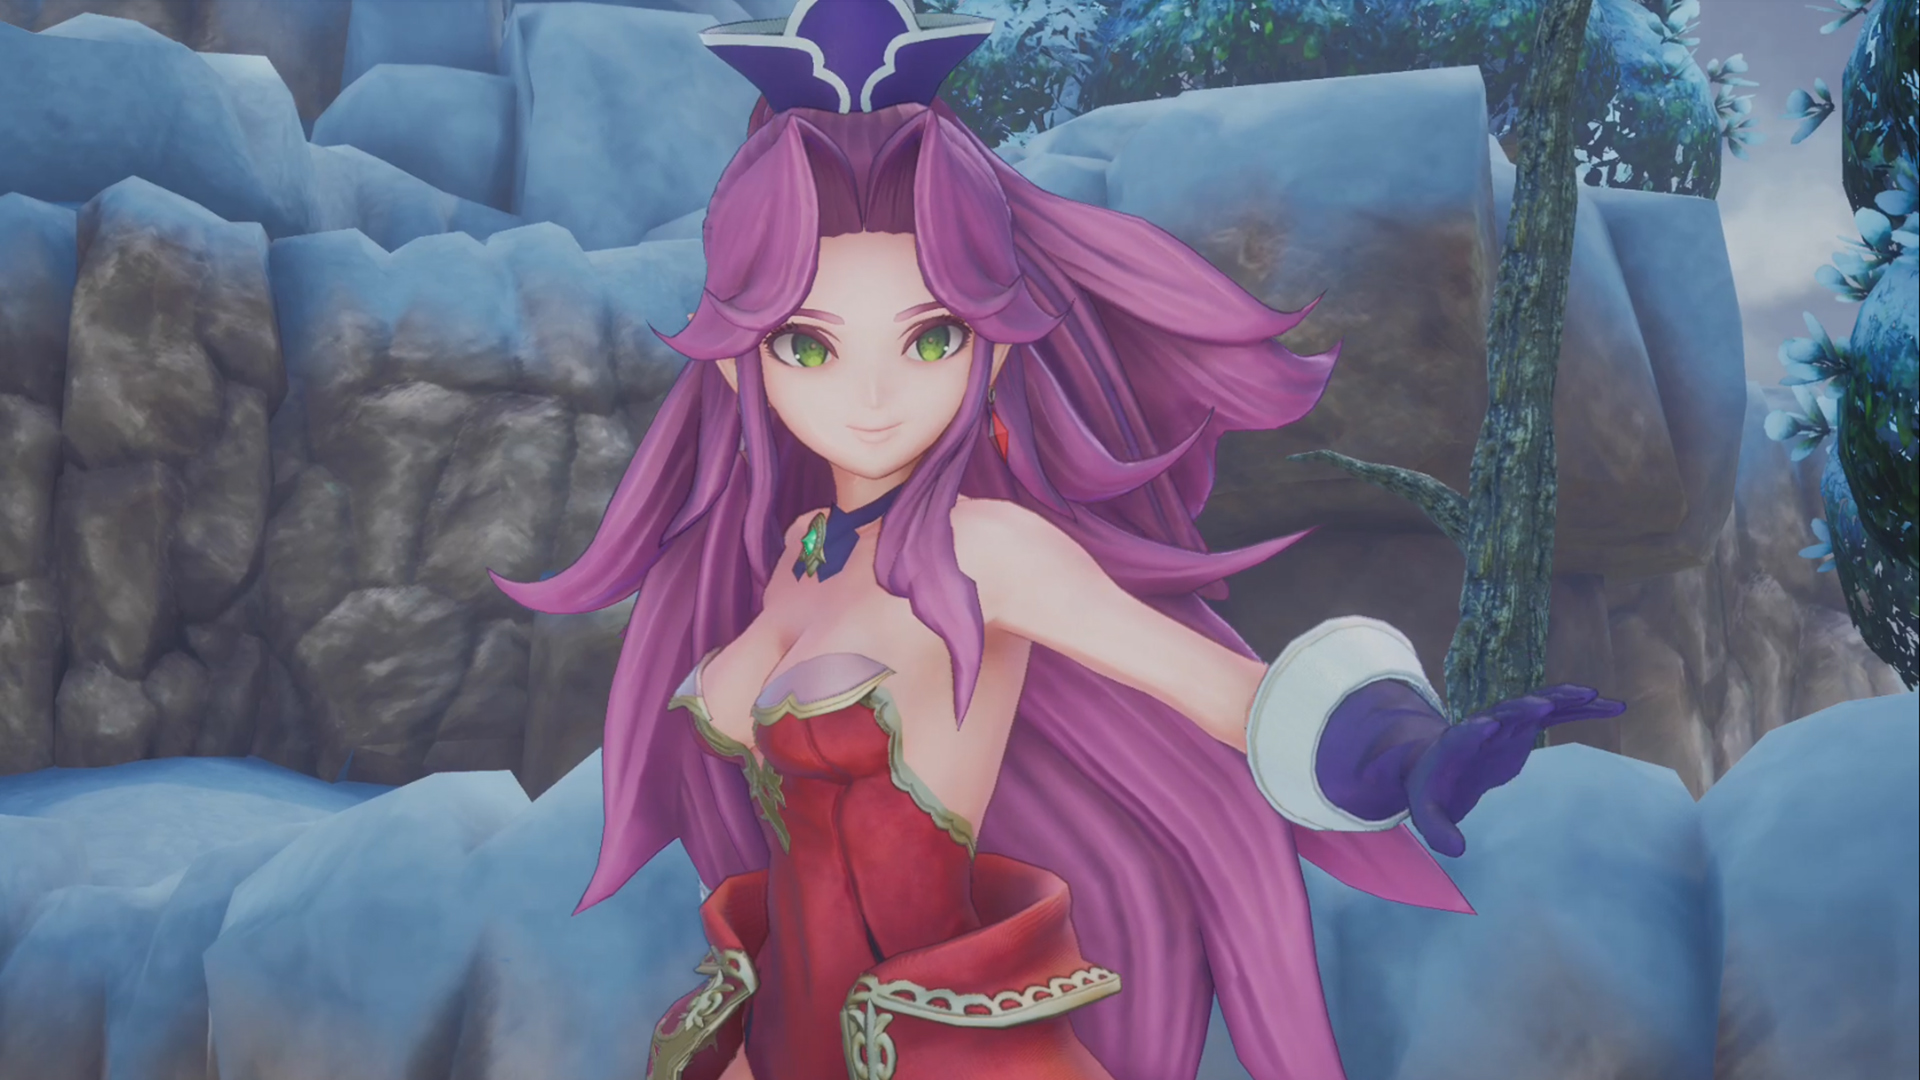 The Trials of Mana remake is coming to Steam, too